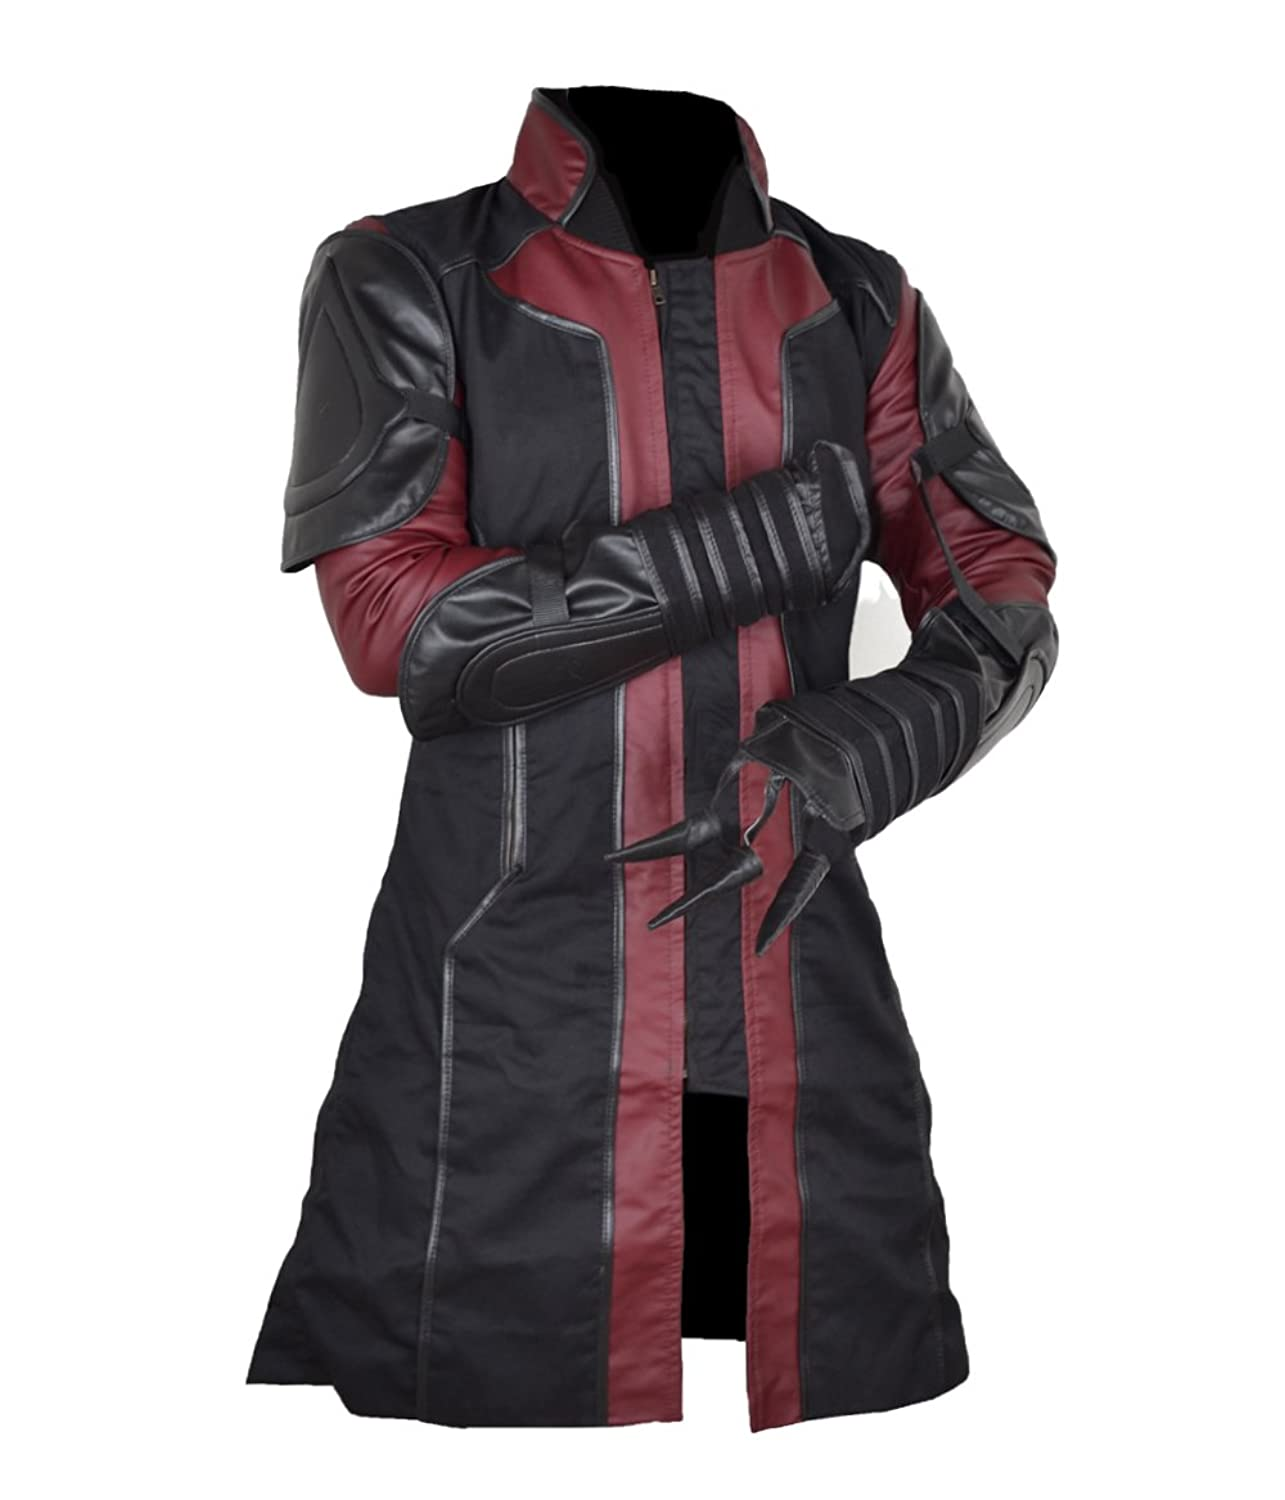 The Avengers: Age of Ultron Hawkeye Faux Leather Coat - DeluxeAdultCostumes.com